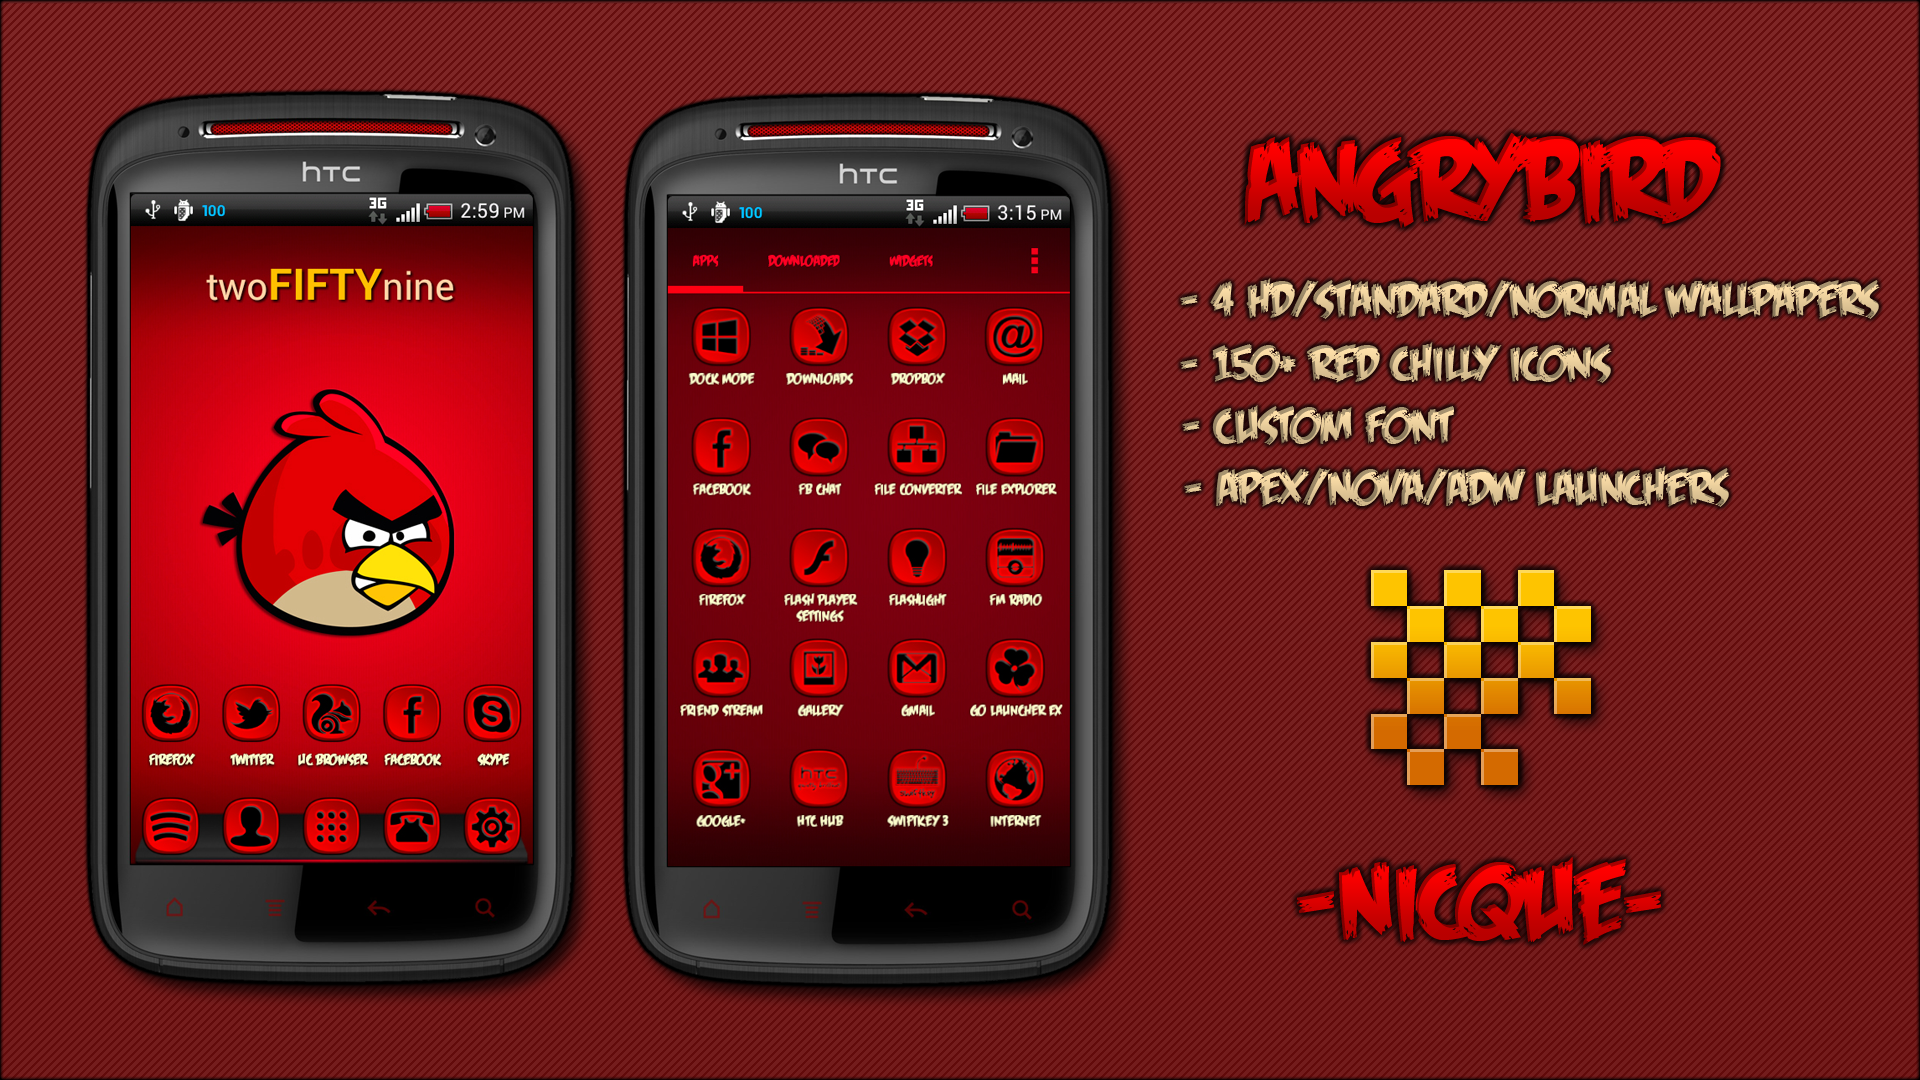 Angry Birds Theme By Navin Rai For Apex Launcher On Android Comes With 4 Hd Wallpapers And 150 Red Chilly Icons Free Normal Wallpaper Bird Theme Cool Themes